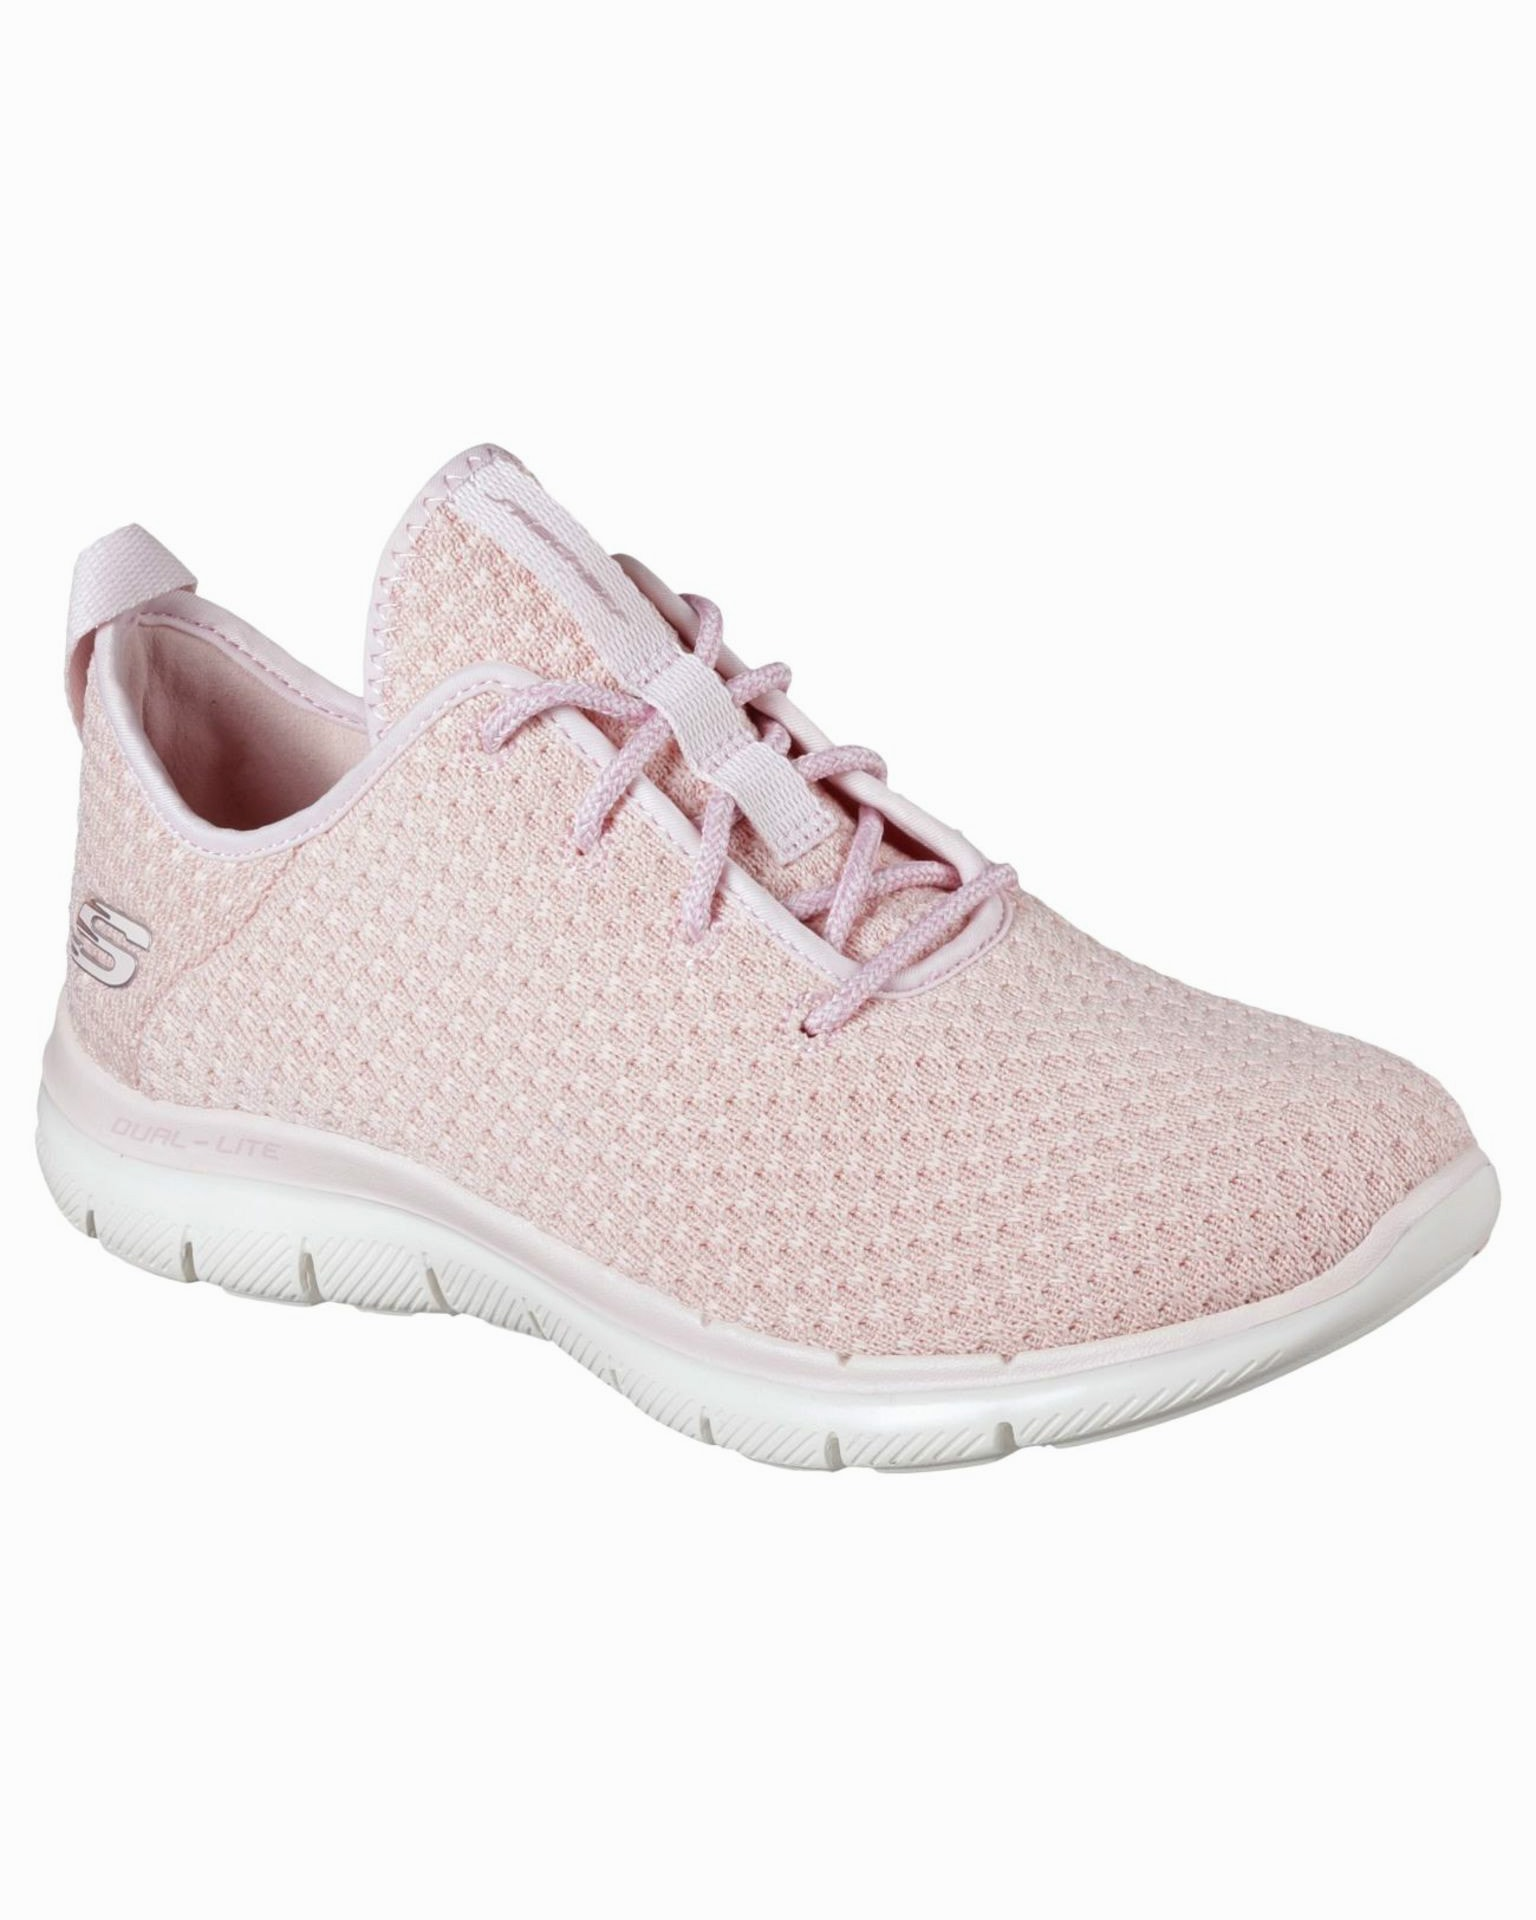 Skechers Womens Flex Appeal 2.0 Bold Move Light Pink Tights.no